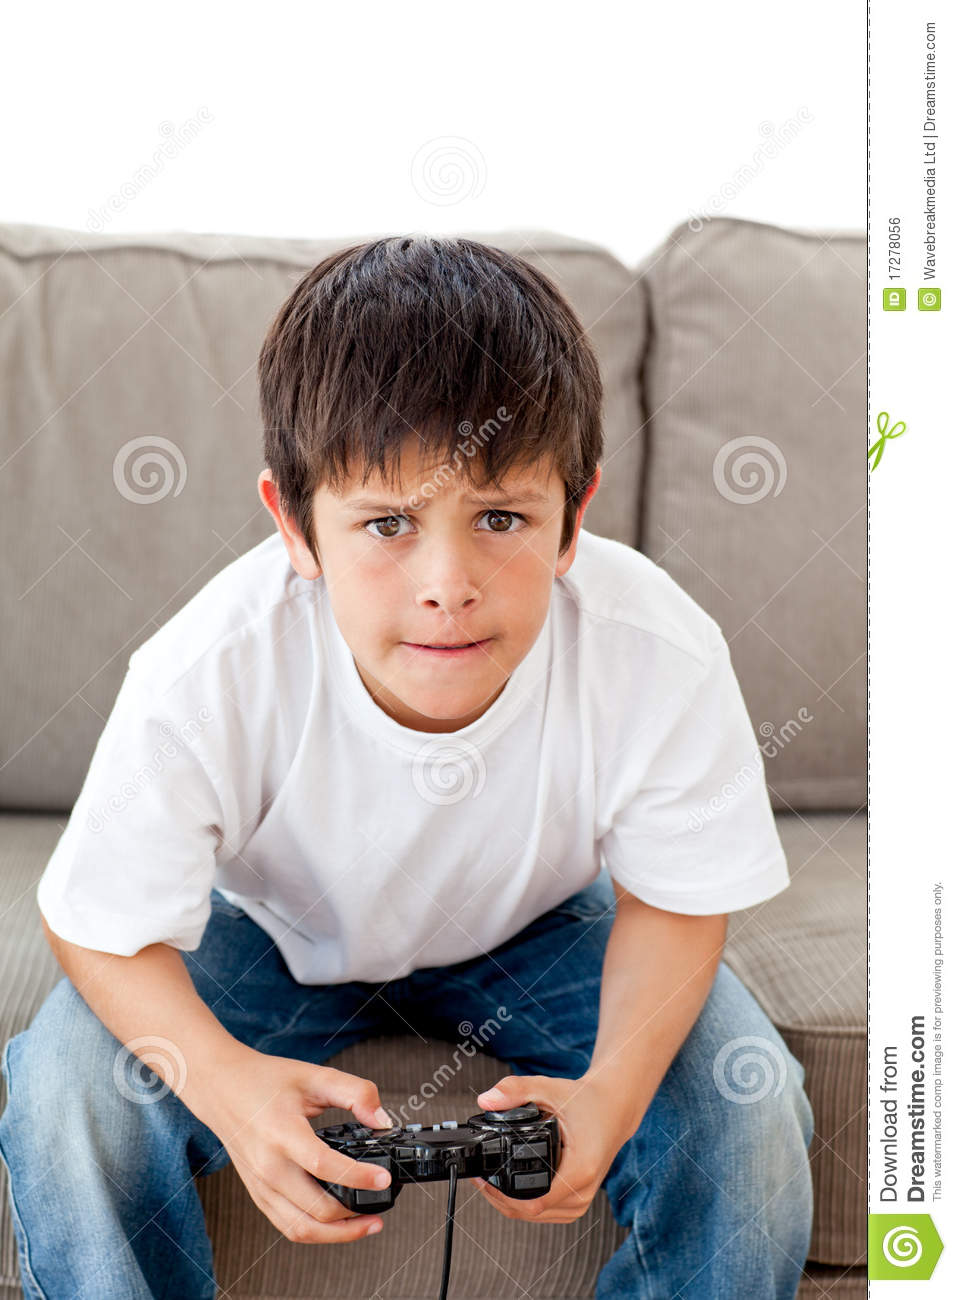 Cute Boy Playing Video Games Sitting On The Sofa Royalty  : cute boy playing video games sitting sofa 17278056 from dreamstime.com size 957 x 1300 jpeg 120kB